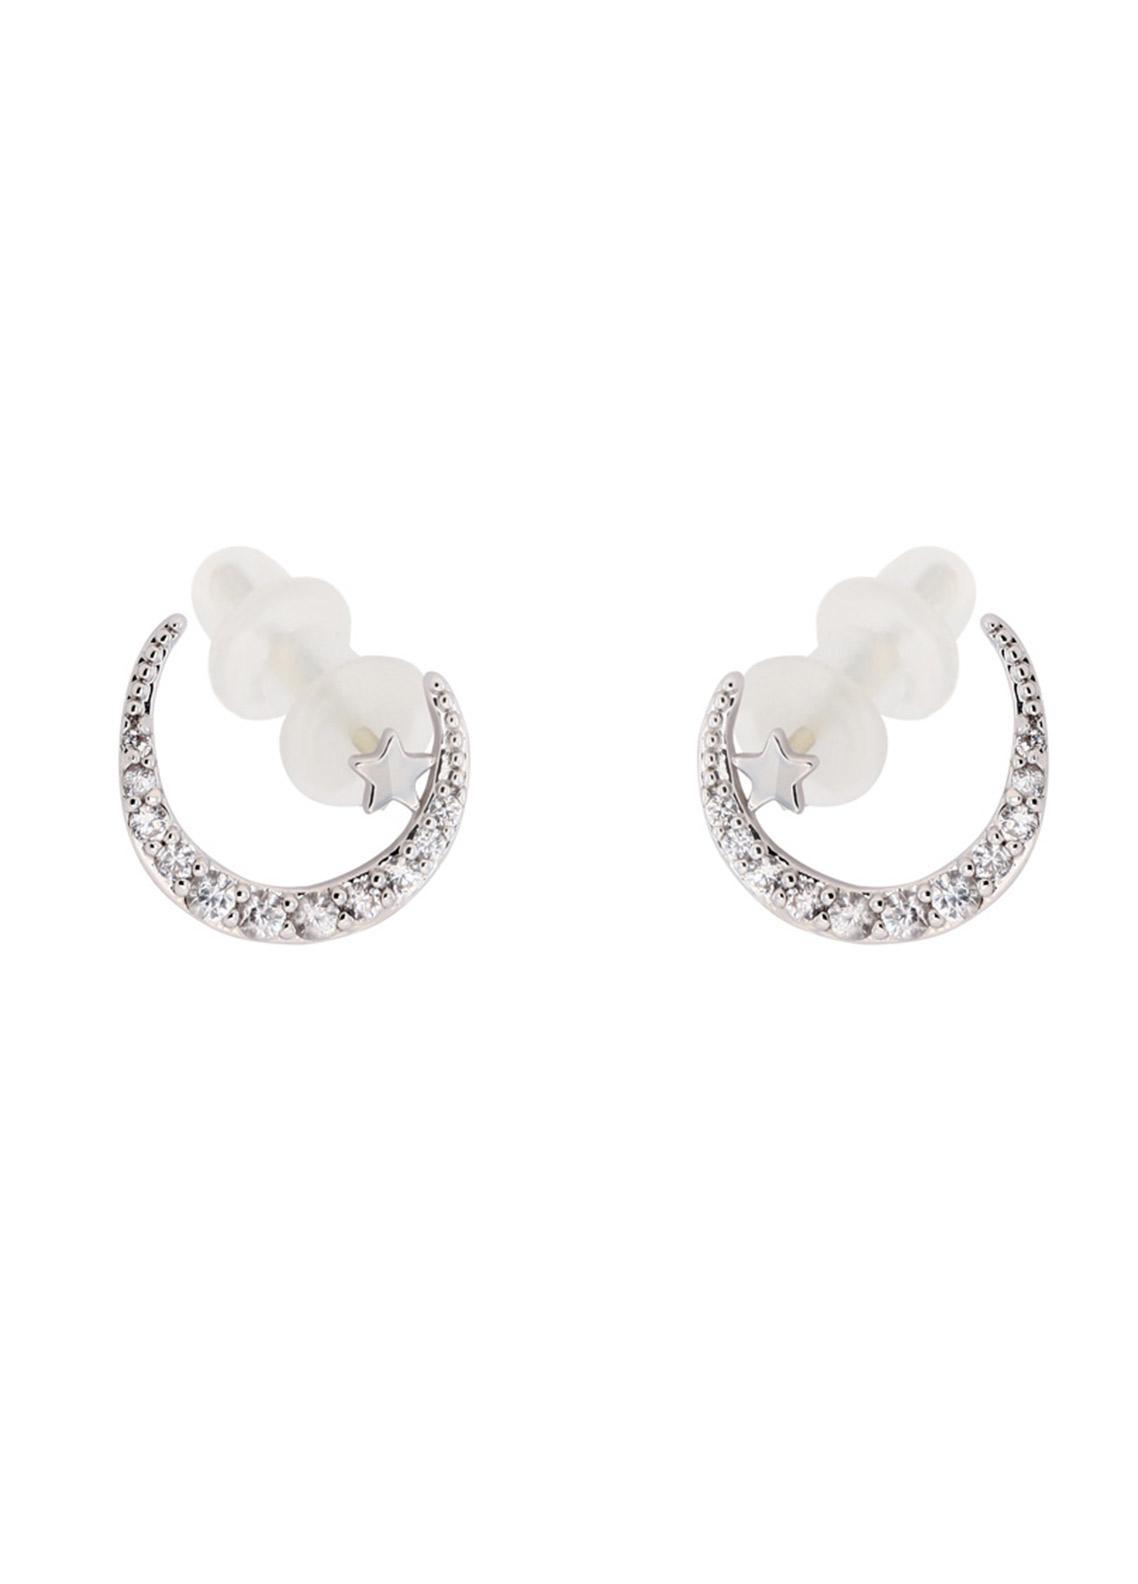 Anna Grace London by Silk Avenue Silver Crystal Sparkling Moon & Star Earring AGE0018 - Ladies Jewellery